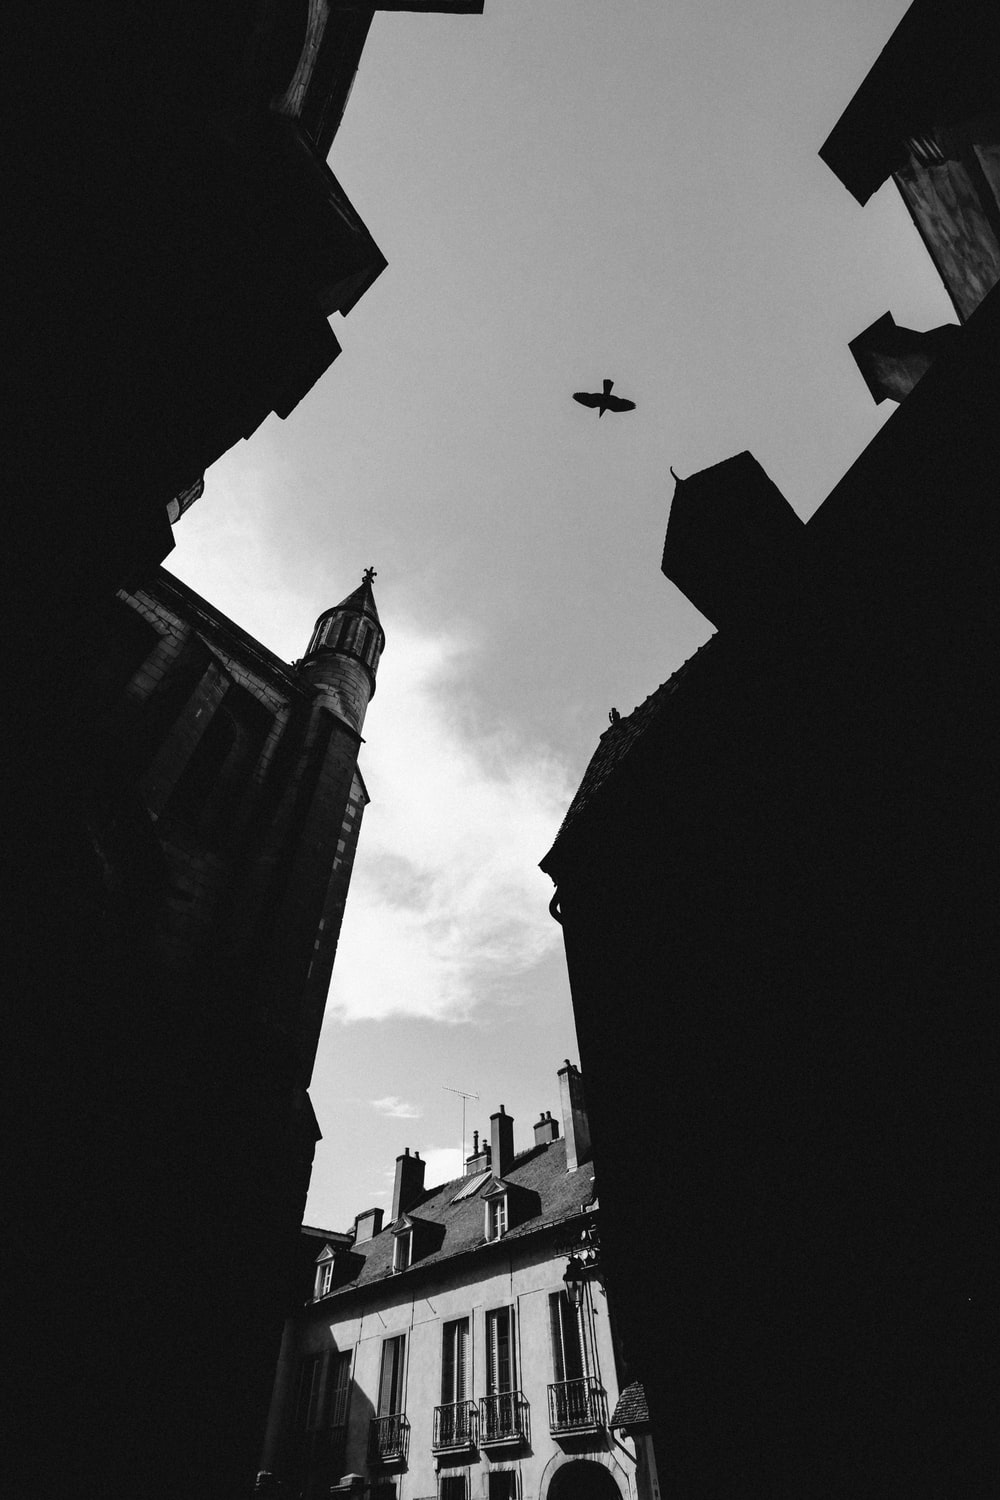 grayscale photography of birds flying on skies